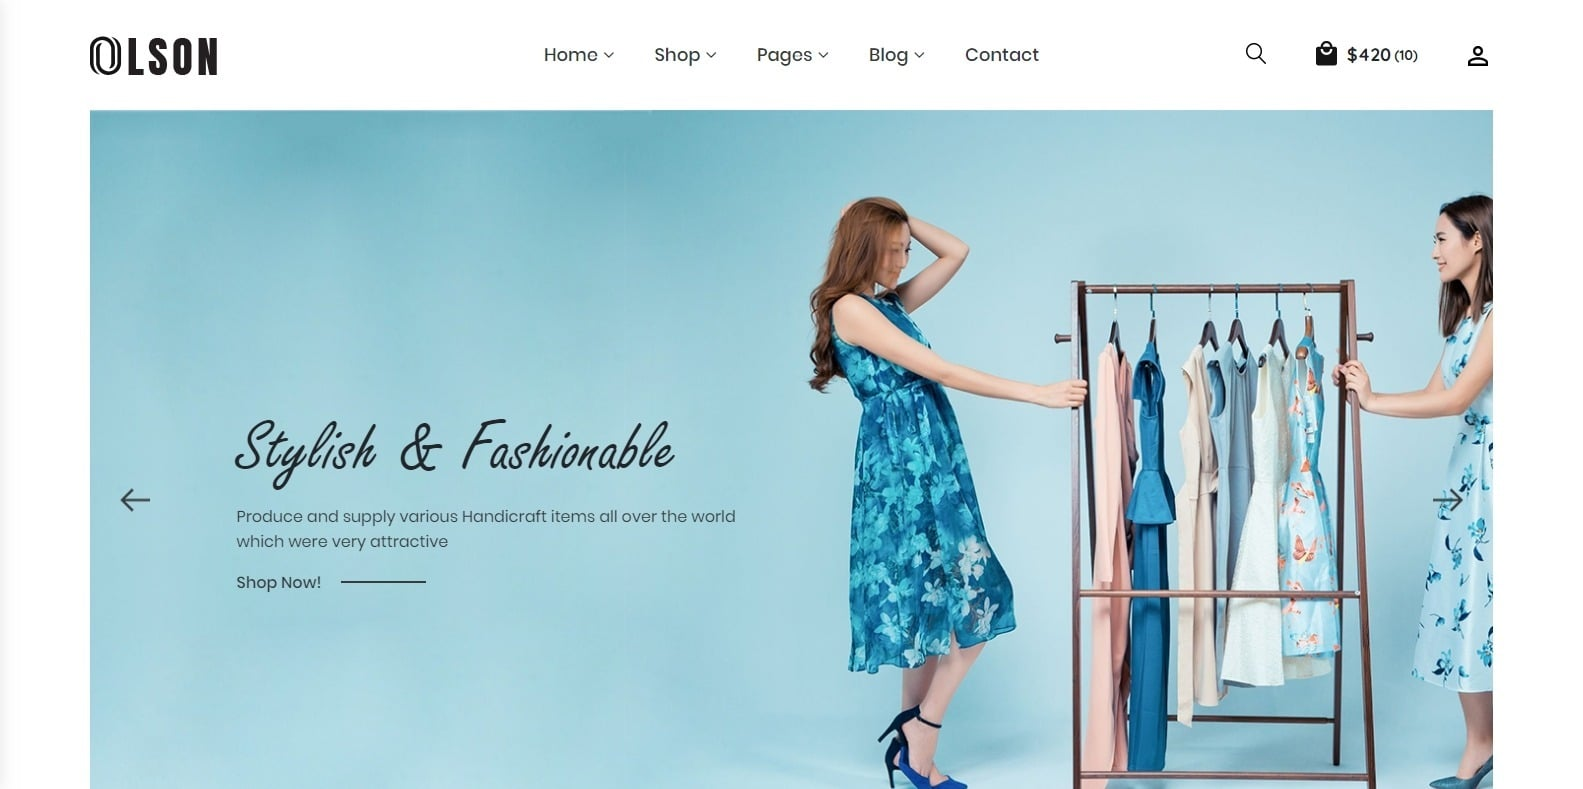 olson-fashion-website-template